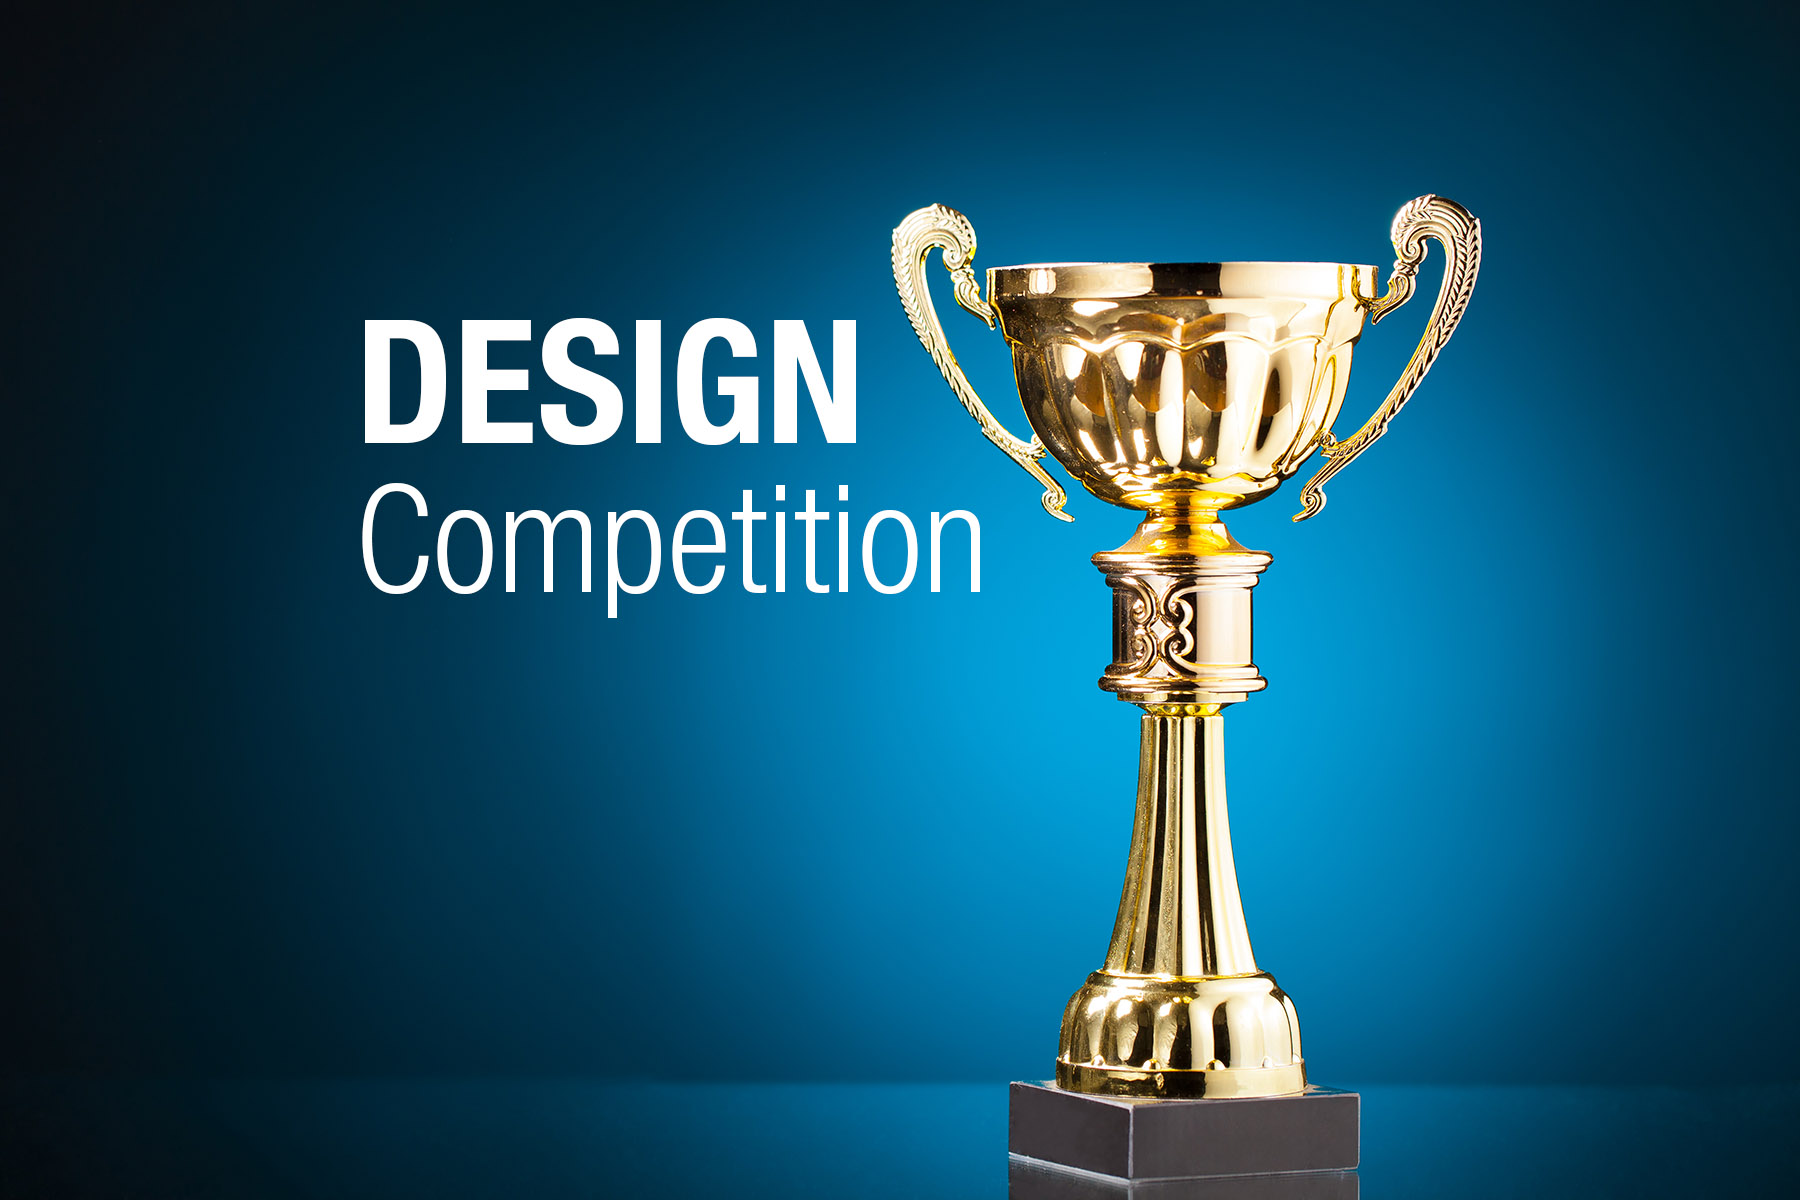 Design Competition Banner With A Gold Trophy In Front Of Blue Background